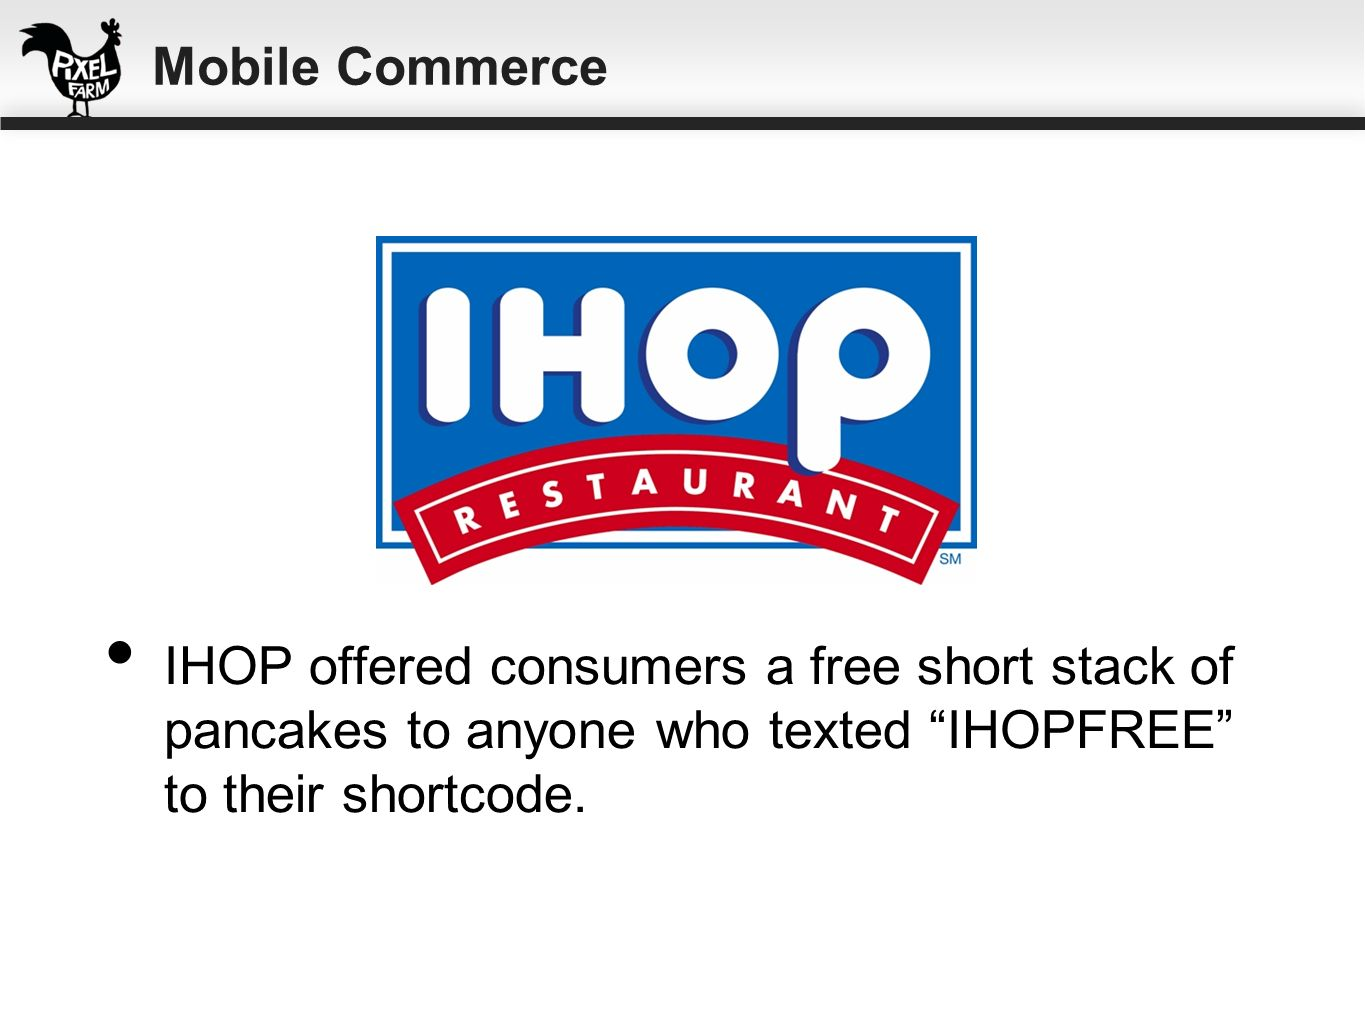 Mobile CommerceIHOP offered consumers a free short stack of pancakes to anyone who texted IHOPFREE to their shortcode.